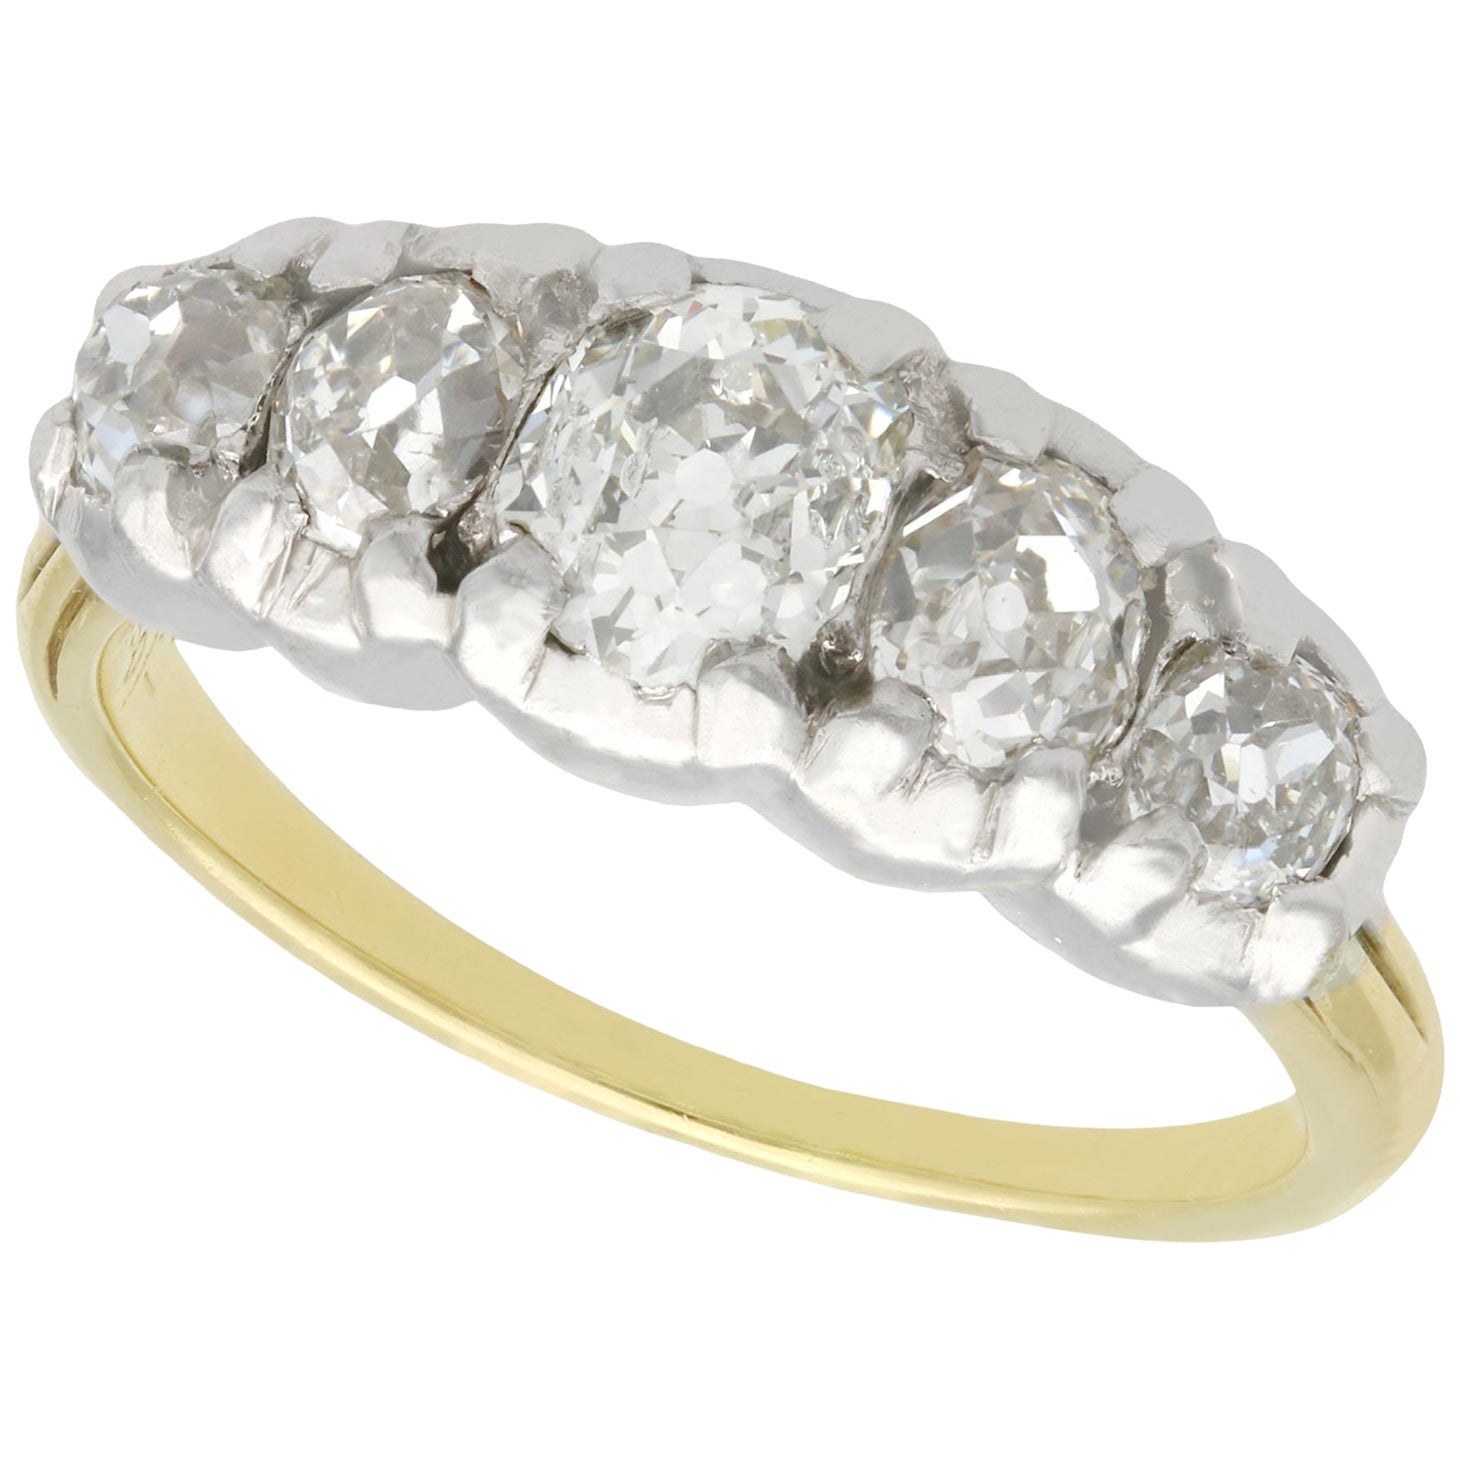 1900s Antique 1.32 Carat Diamond and Yellow Gold Five-Stone Ring